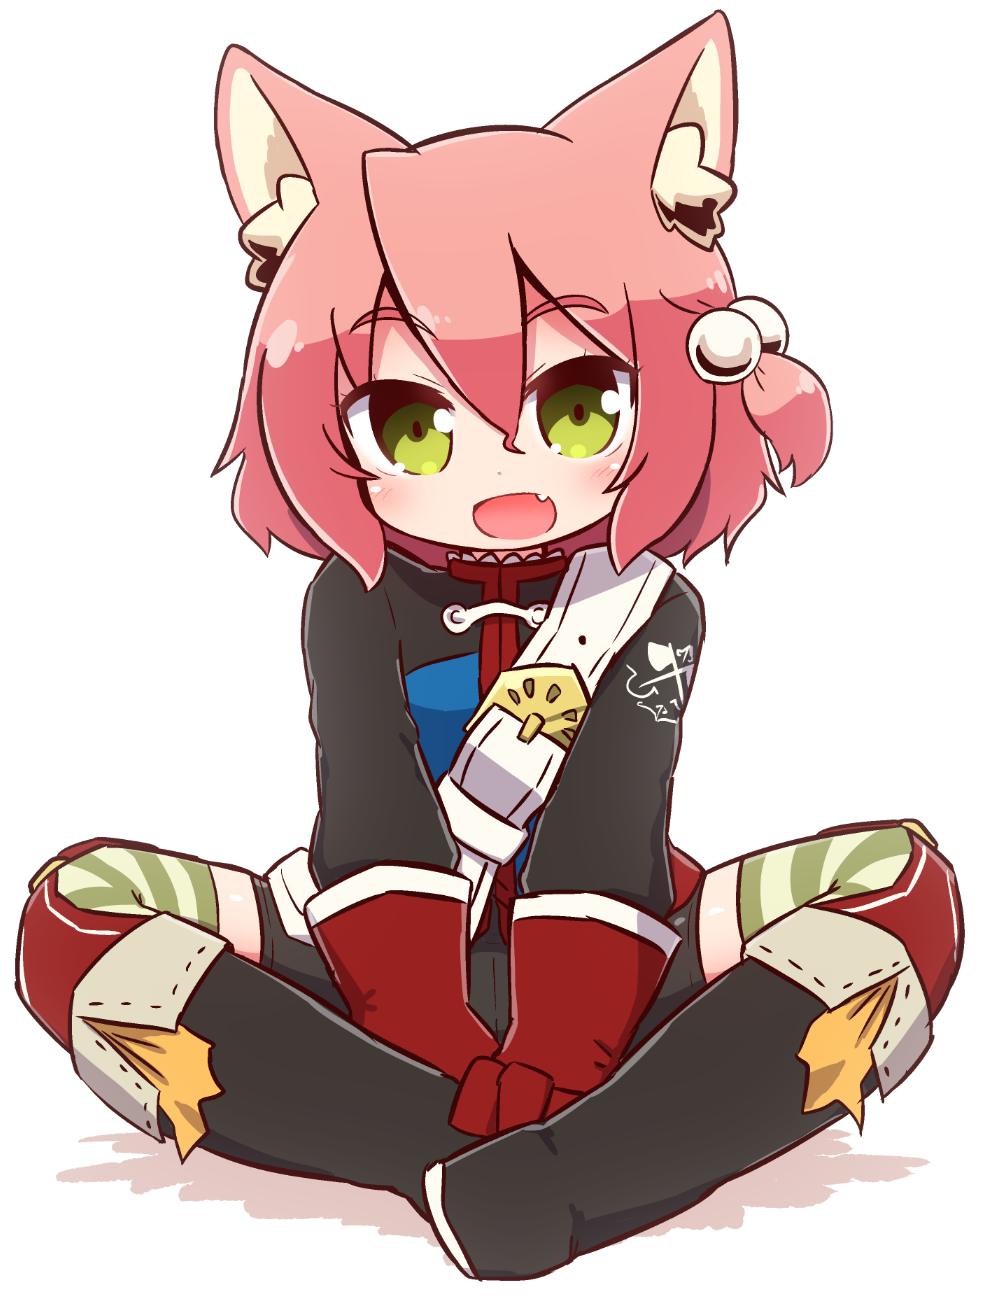 1girl 7th_dragon 7th_dragon_(series) :d animal_ear_fluff animal_ears belt belt_buckle black_footwear blue_jacket blush boots buckle cat_ears chibi commentary_request eyebrows_visible_through_hair fang full_body gloves green_eyes hair_bobbles hair_ornament harukara_(7th_dragon) head_tilt highres jacket knee_boots long_sleeves looking_at_viewer naga_u one_side_up open_mouth pink_hair red_gloves shadow sitting smile solo striped striped_legwear thigh-highs thighhighs_under_boots white_background white_belt